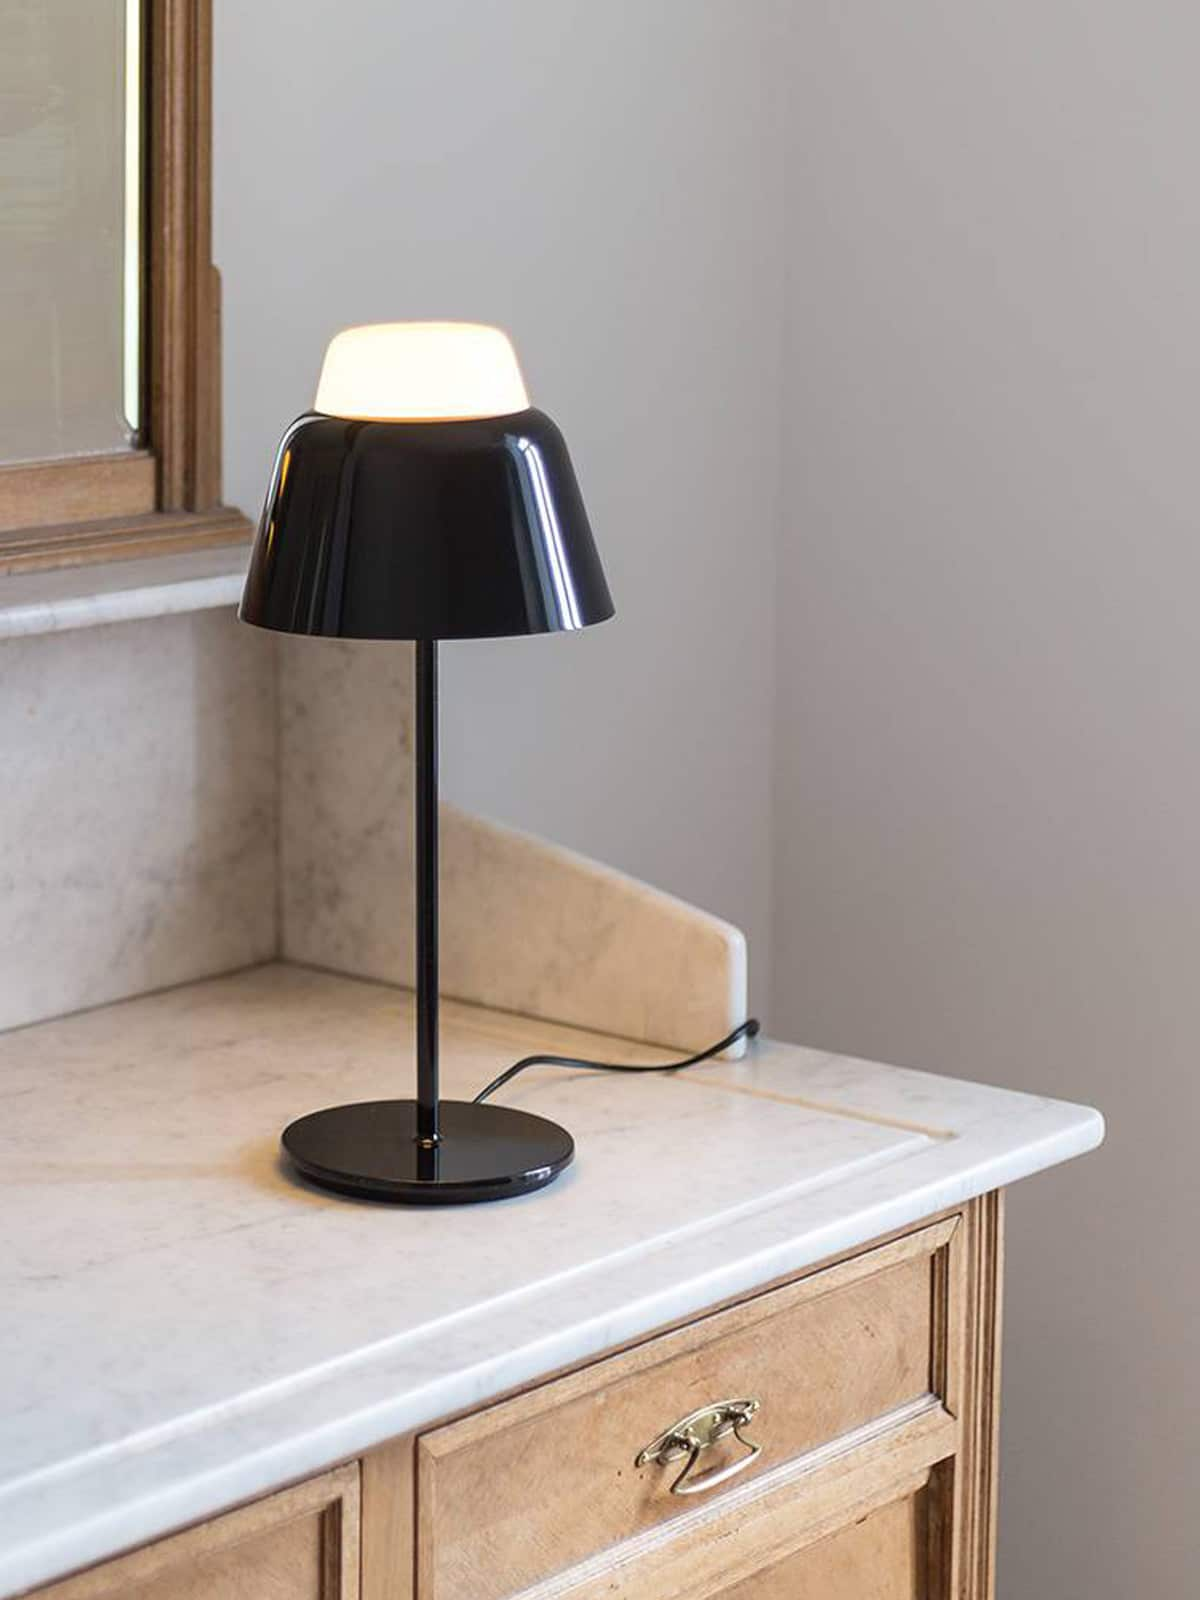 DesignOrt Blog: Deutsche Designerleuchten TEO EUROPE Modu T Tischleuchte #lampe Made in Germany